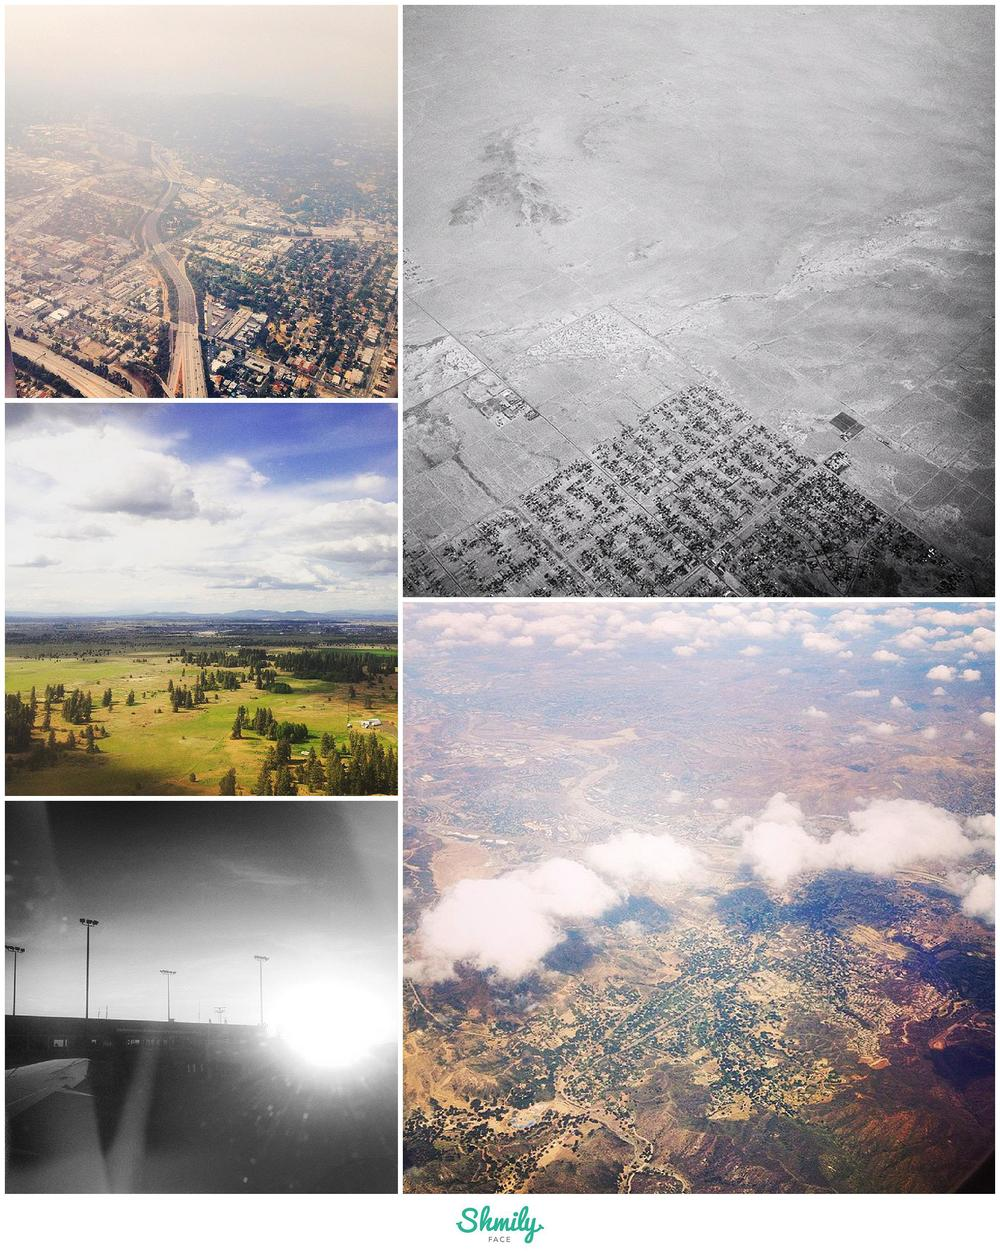 Some of the shots I got while being squished against the airplane window during my travels these last few weeks.